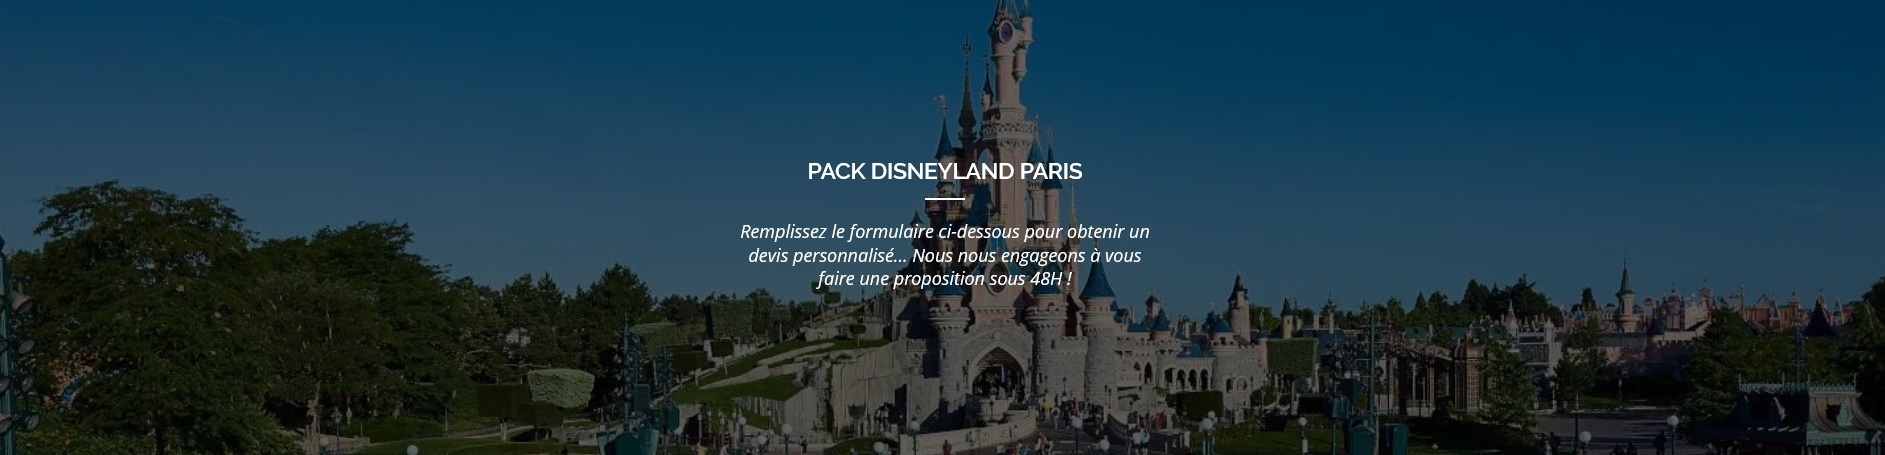 Pack Disneyland Paris